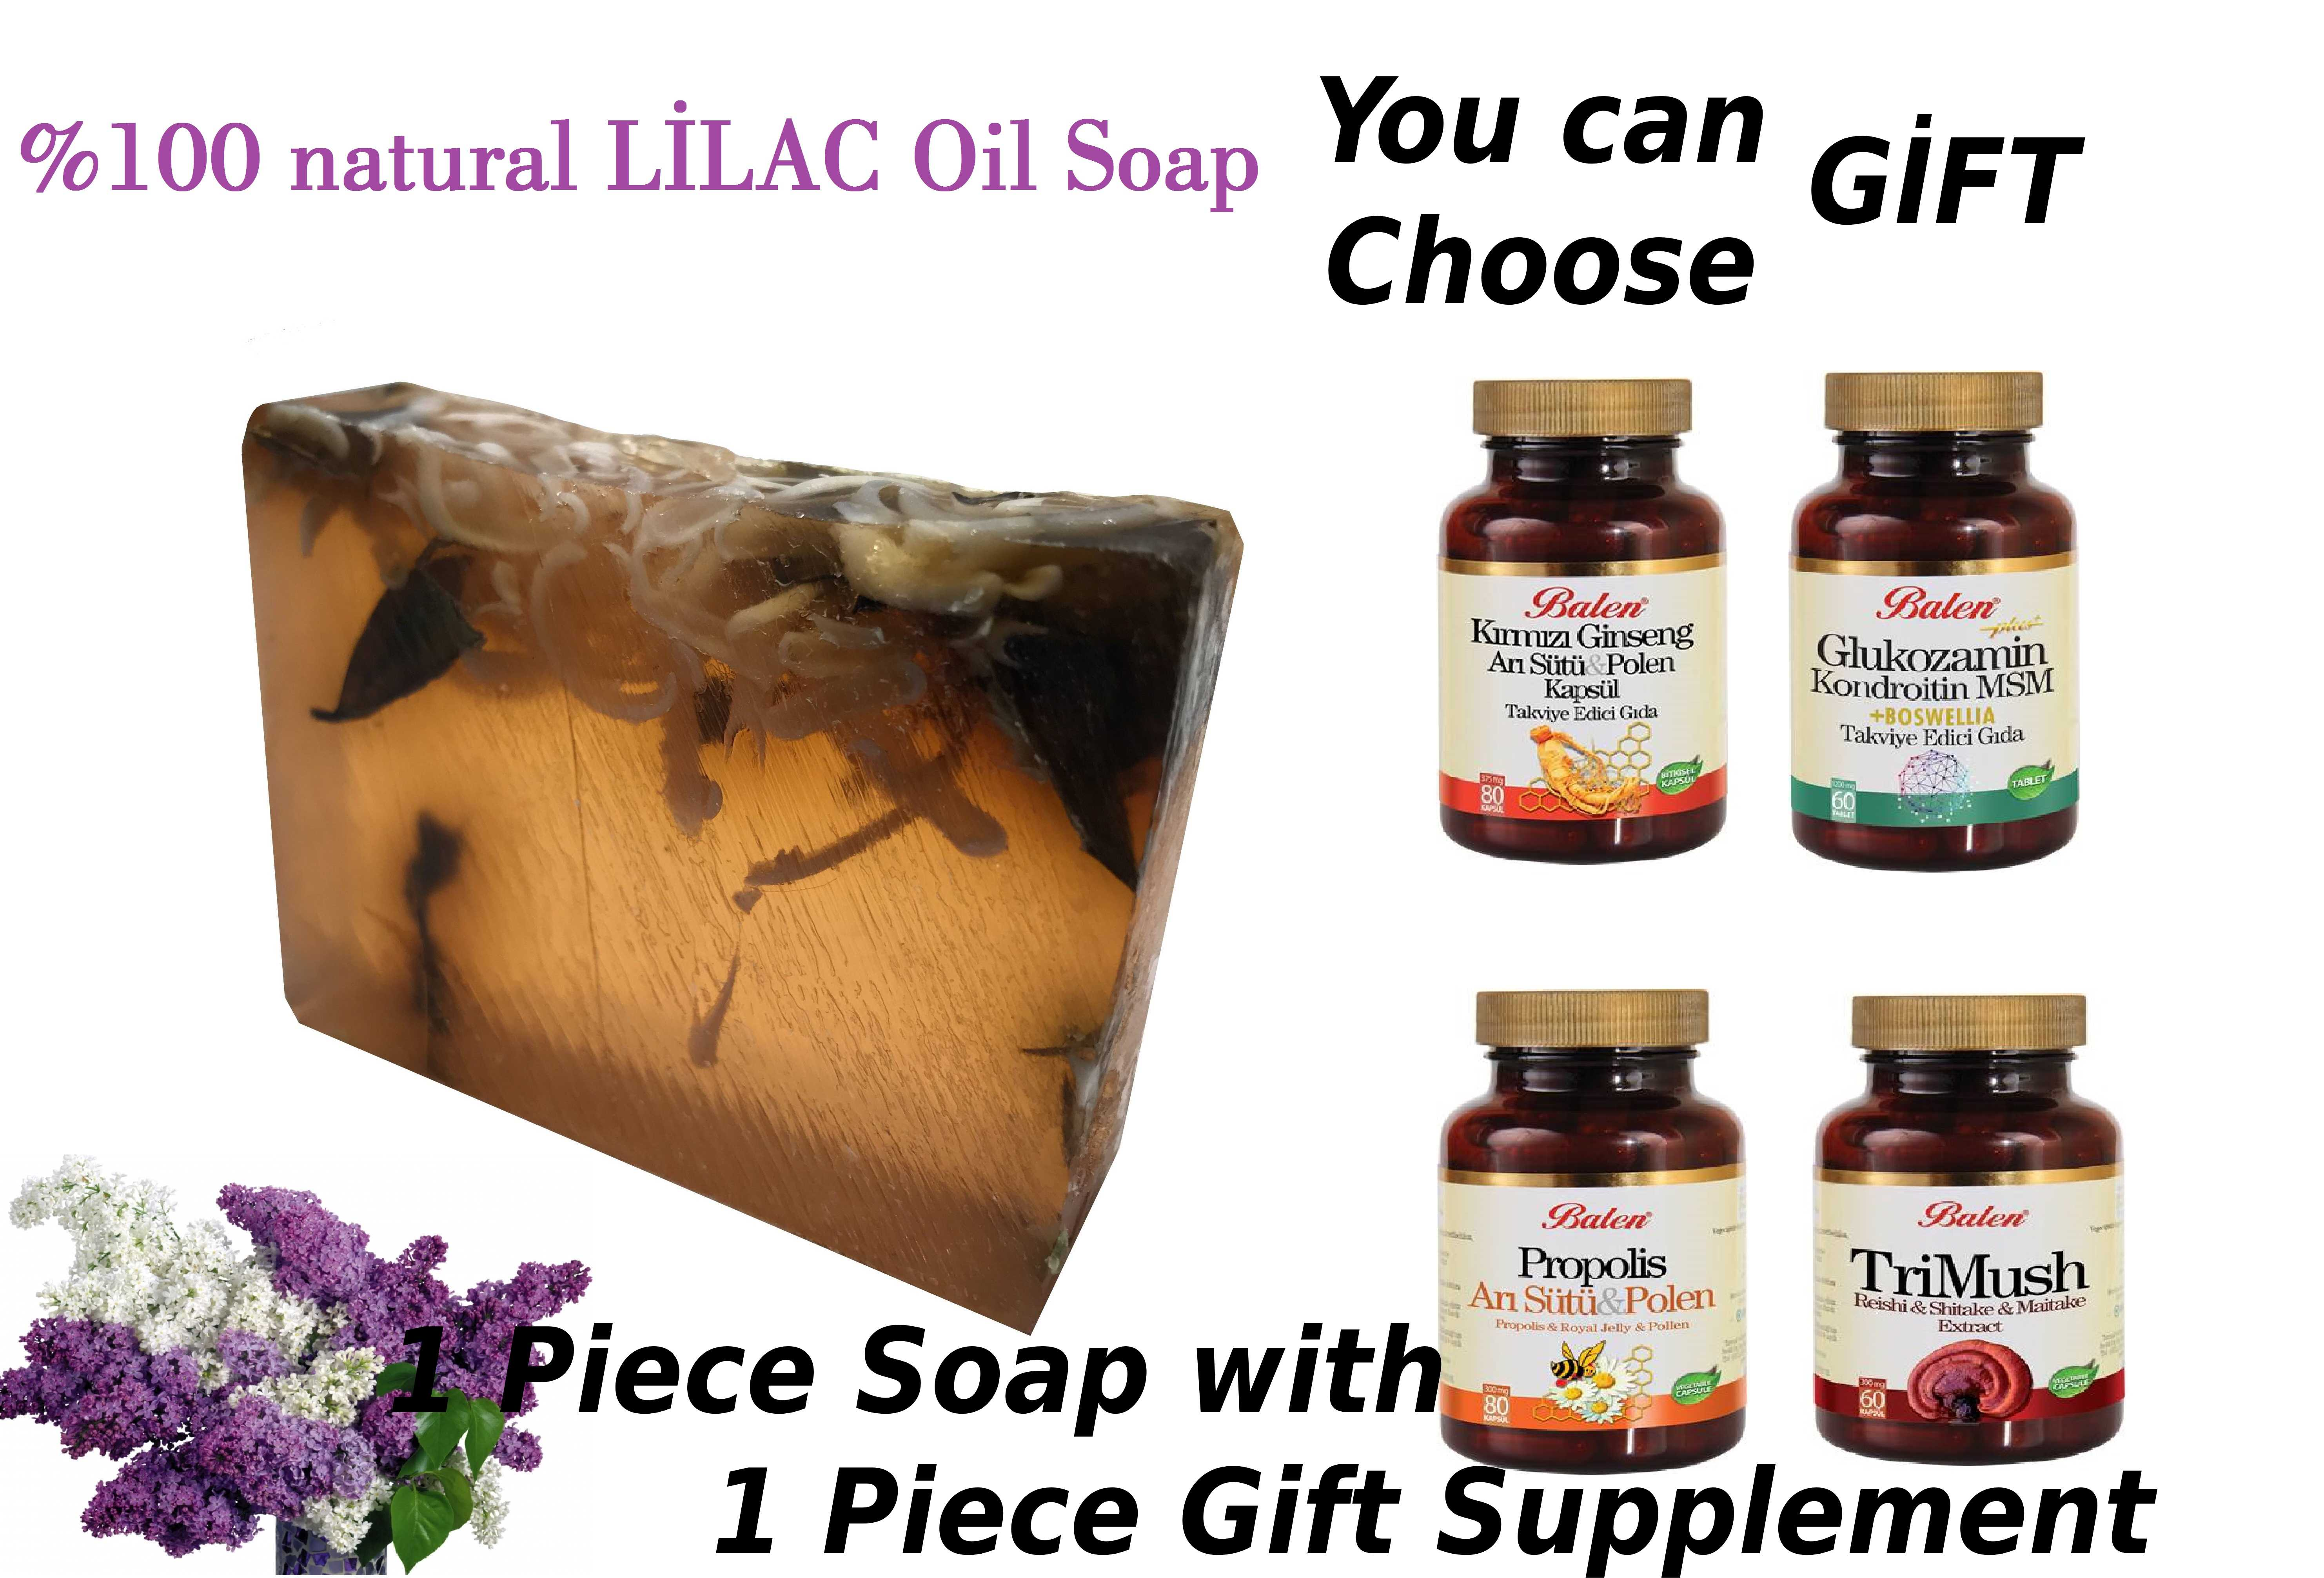 (gift Items) HANDMADE LILAC Essential Oil  Moisturizer Antibacterial 100gr Soap Bar With Glycerine With A Gift Supplement